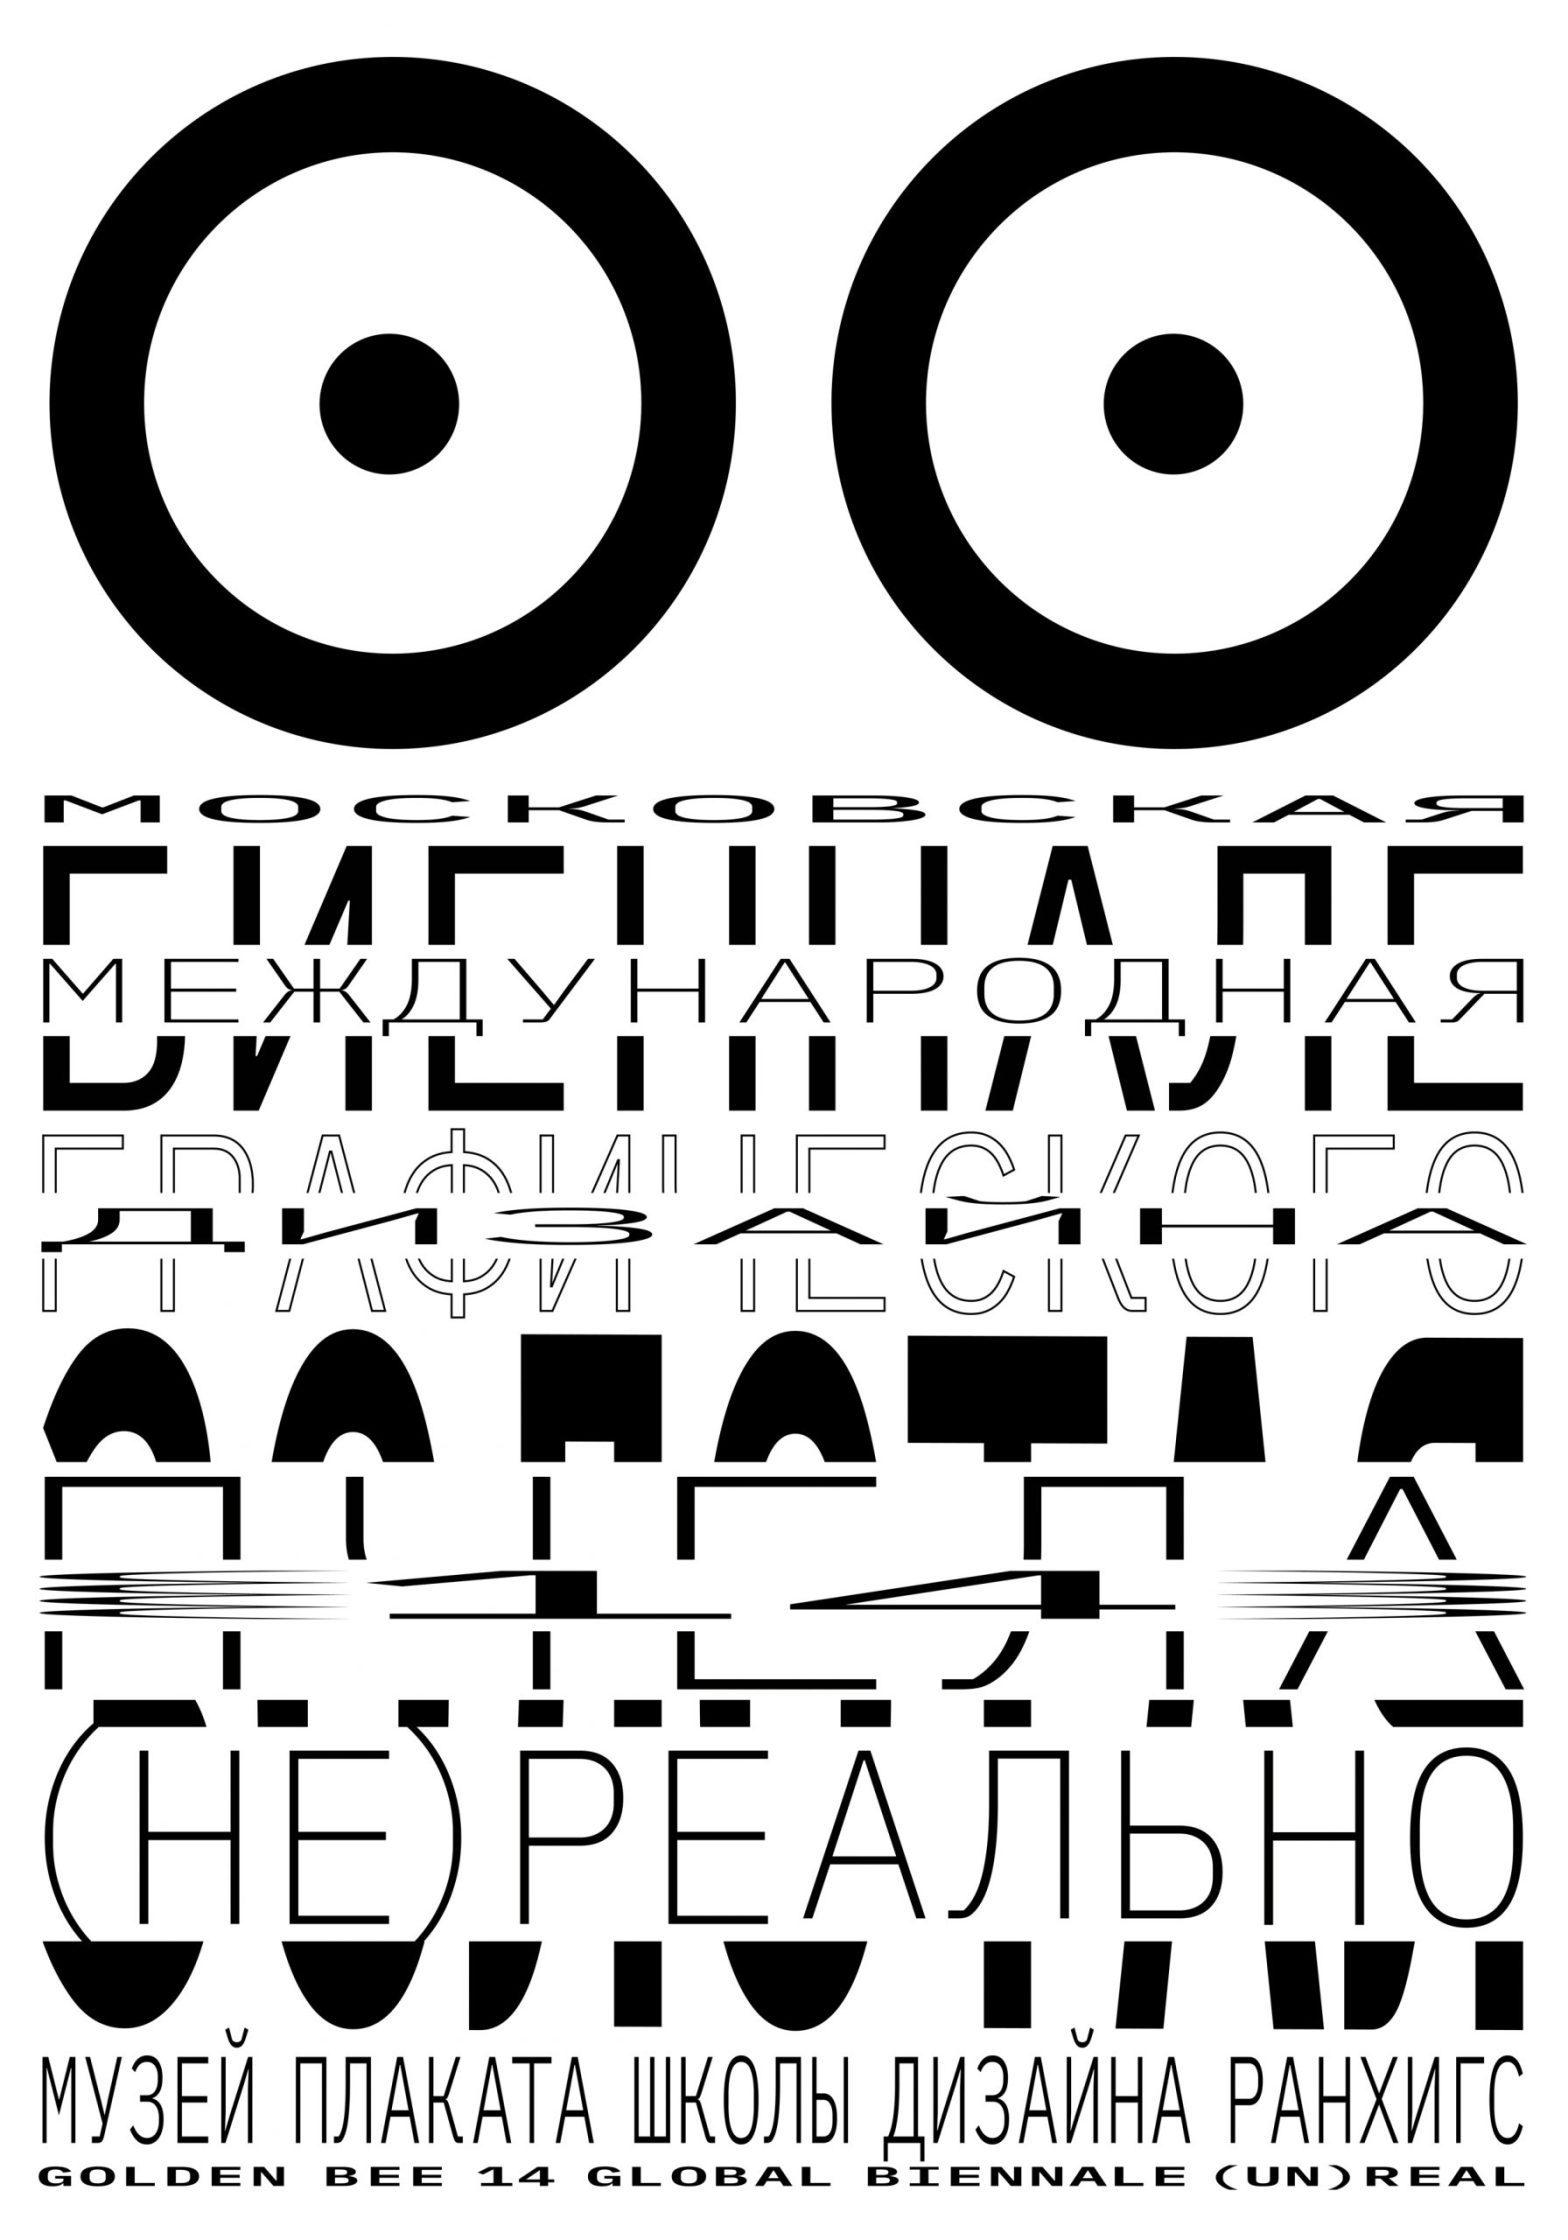 Thumbnail for The Daily Heller: Russia's Golden Bee Biennale Gets Good Buzz